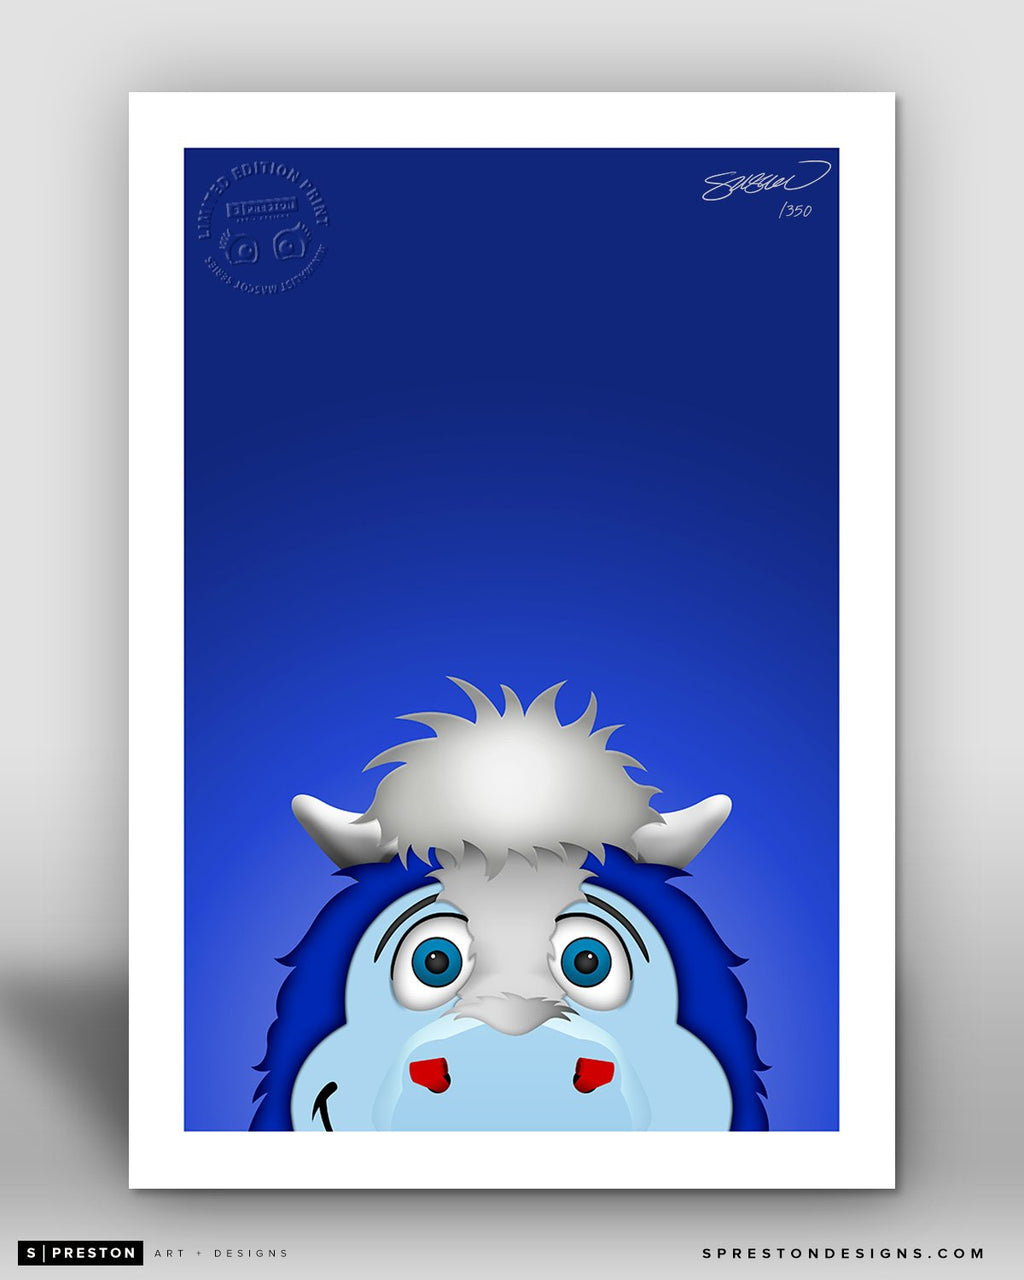 Minimalist Blue Indianapolis Colts Mascot - S. Preston